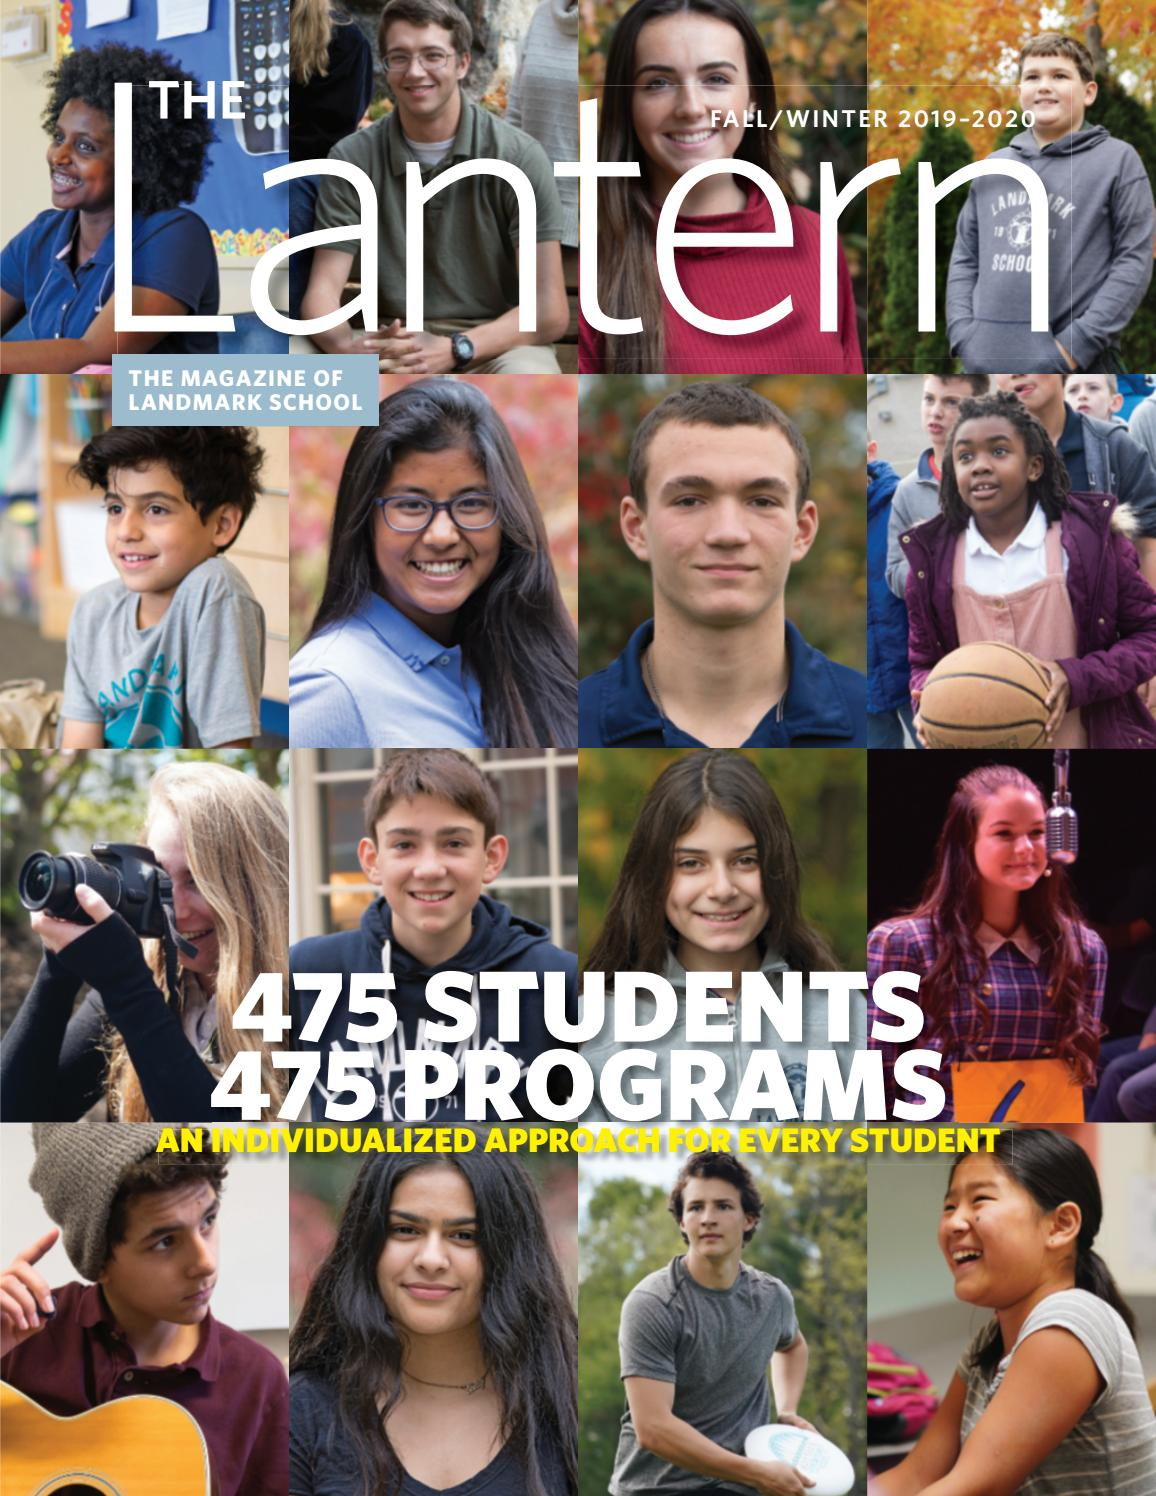 Landmark School Lantern Magazine Fall 2019 Winter 2020 By Susan Tomases Issuu Jennifer goes by the name silver beauty because despite her grey hair, she maintains excellent fitness. landmark school lantern magazine fall